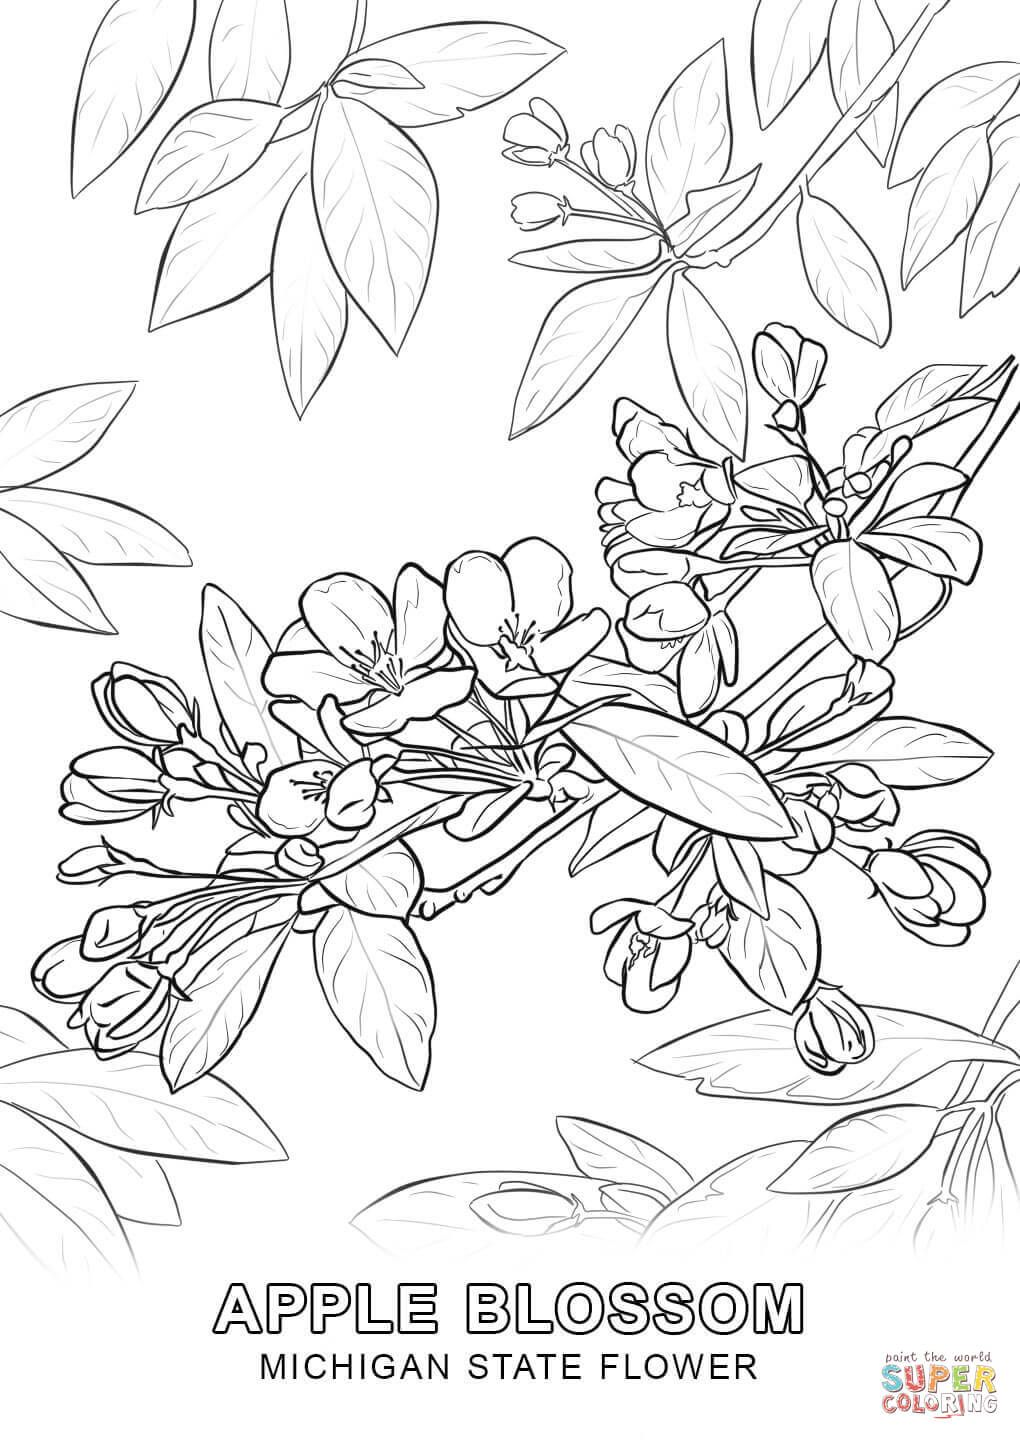 michigan state flower coloring pagejpg 10201440